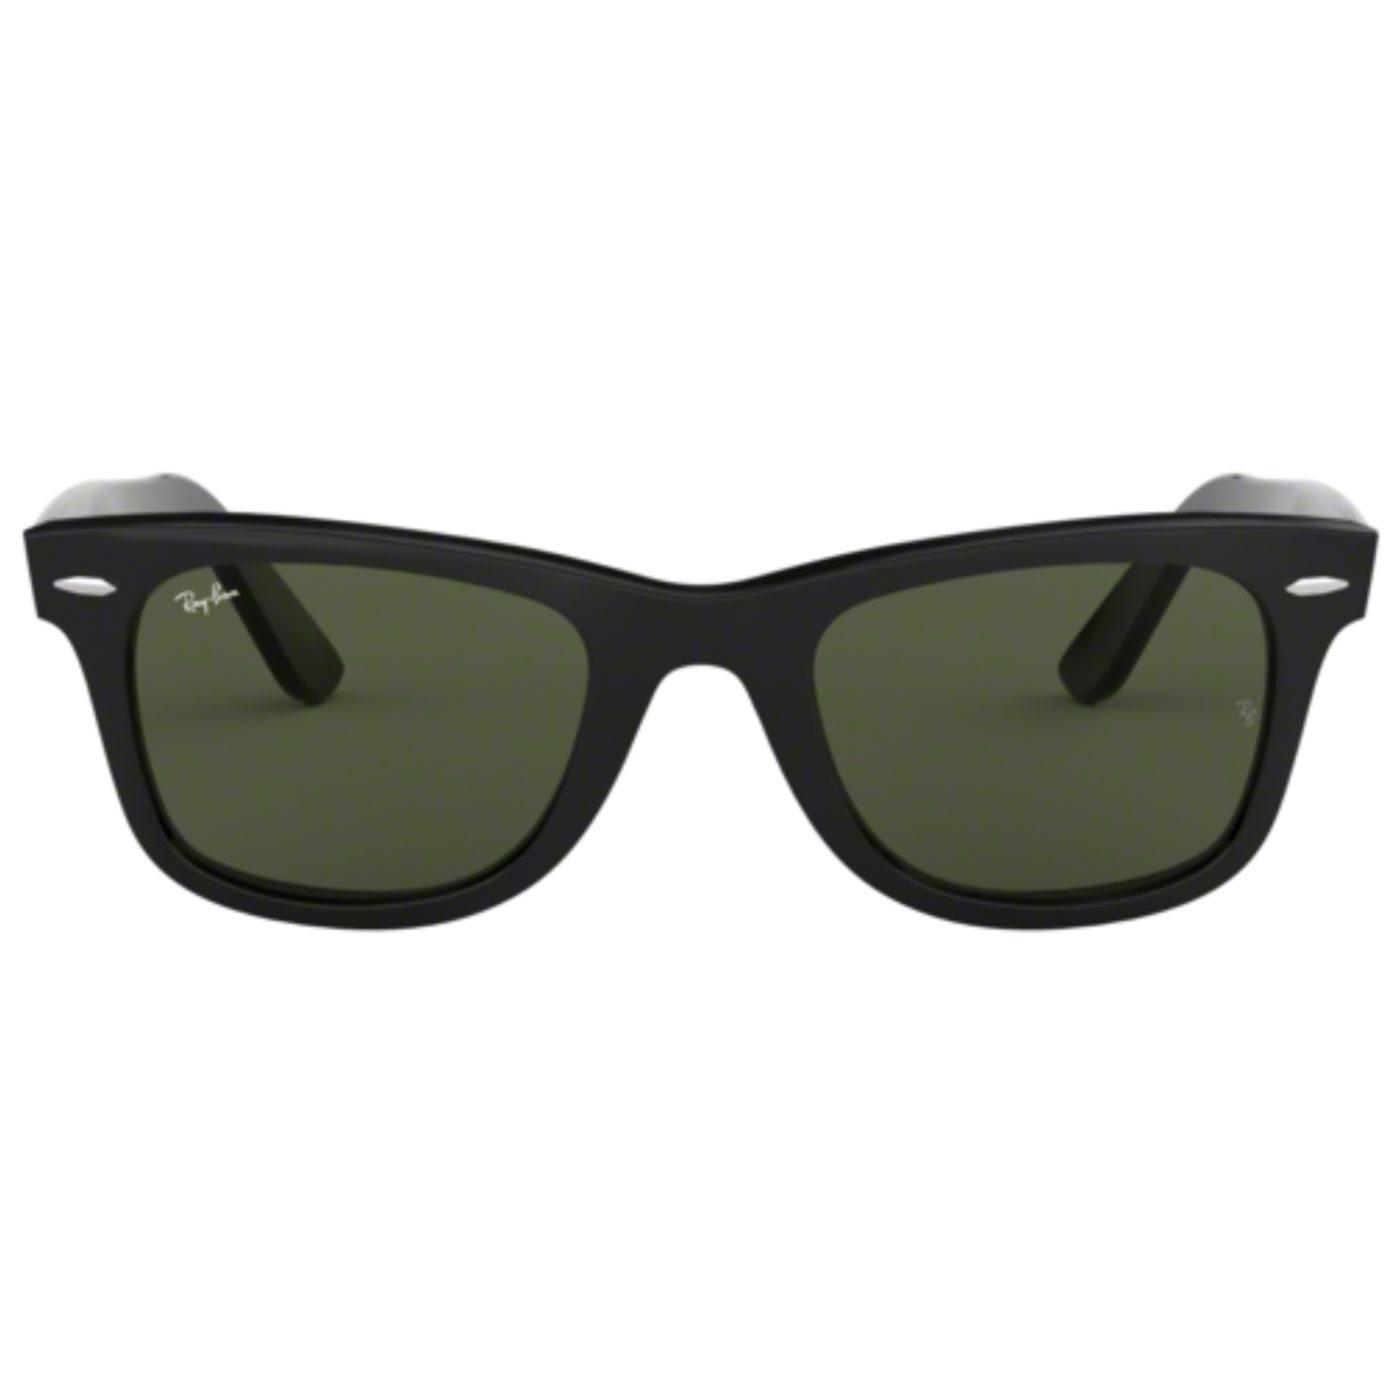 Ray-Ban Original Wayfarer Retro Sunglasses Black